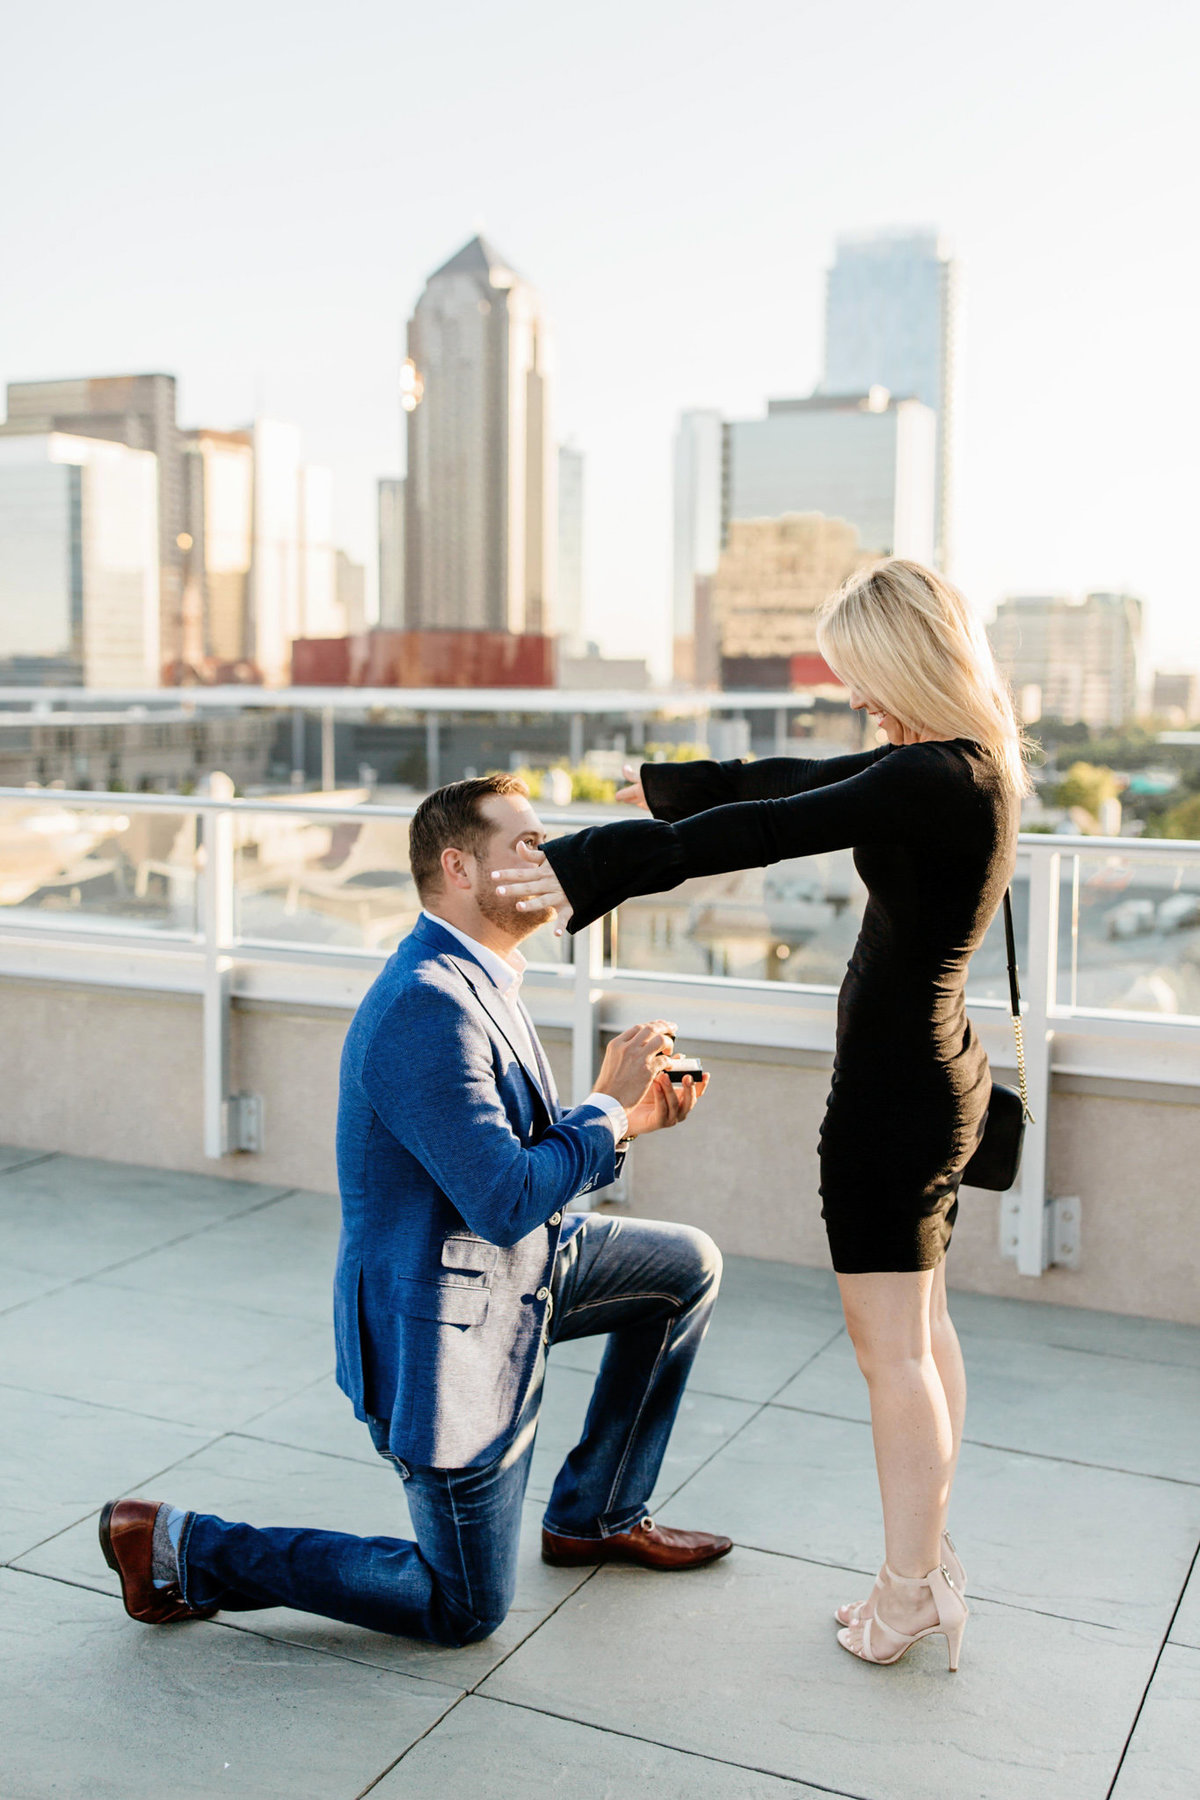 Eric & Megan - Downtown Dallas Rooftop Proposal & Engagement Session-31